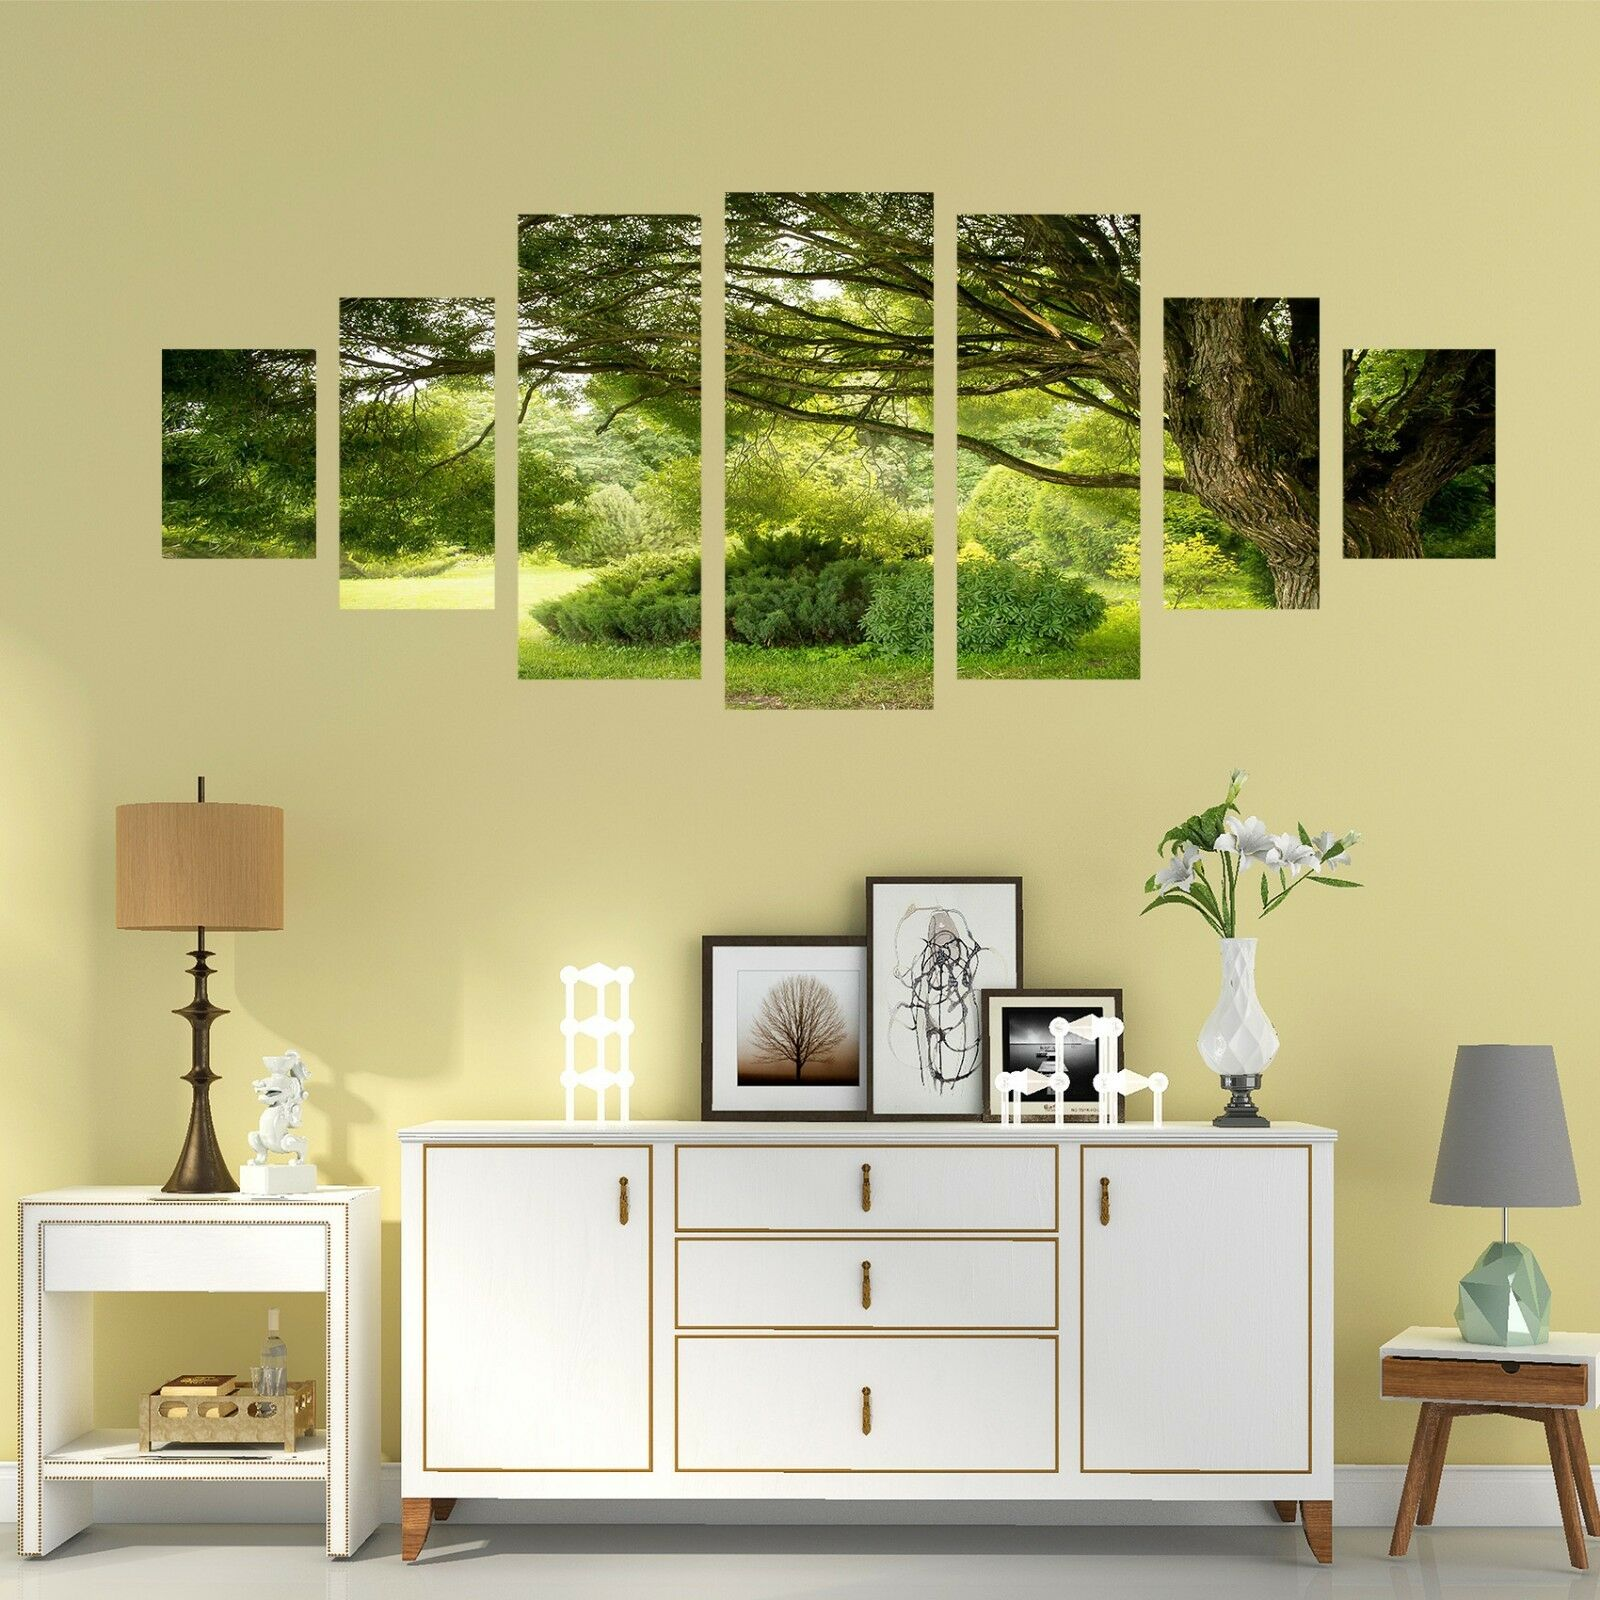 3D Garden Lawn 677 Unframed Print Wall Paper Decal Wall Deco Indoor AJ Wall